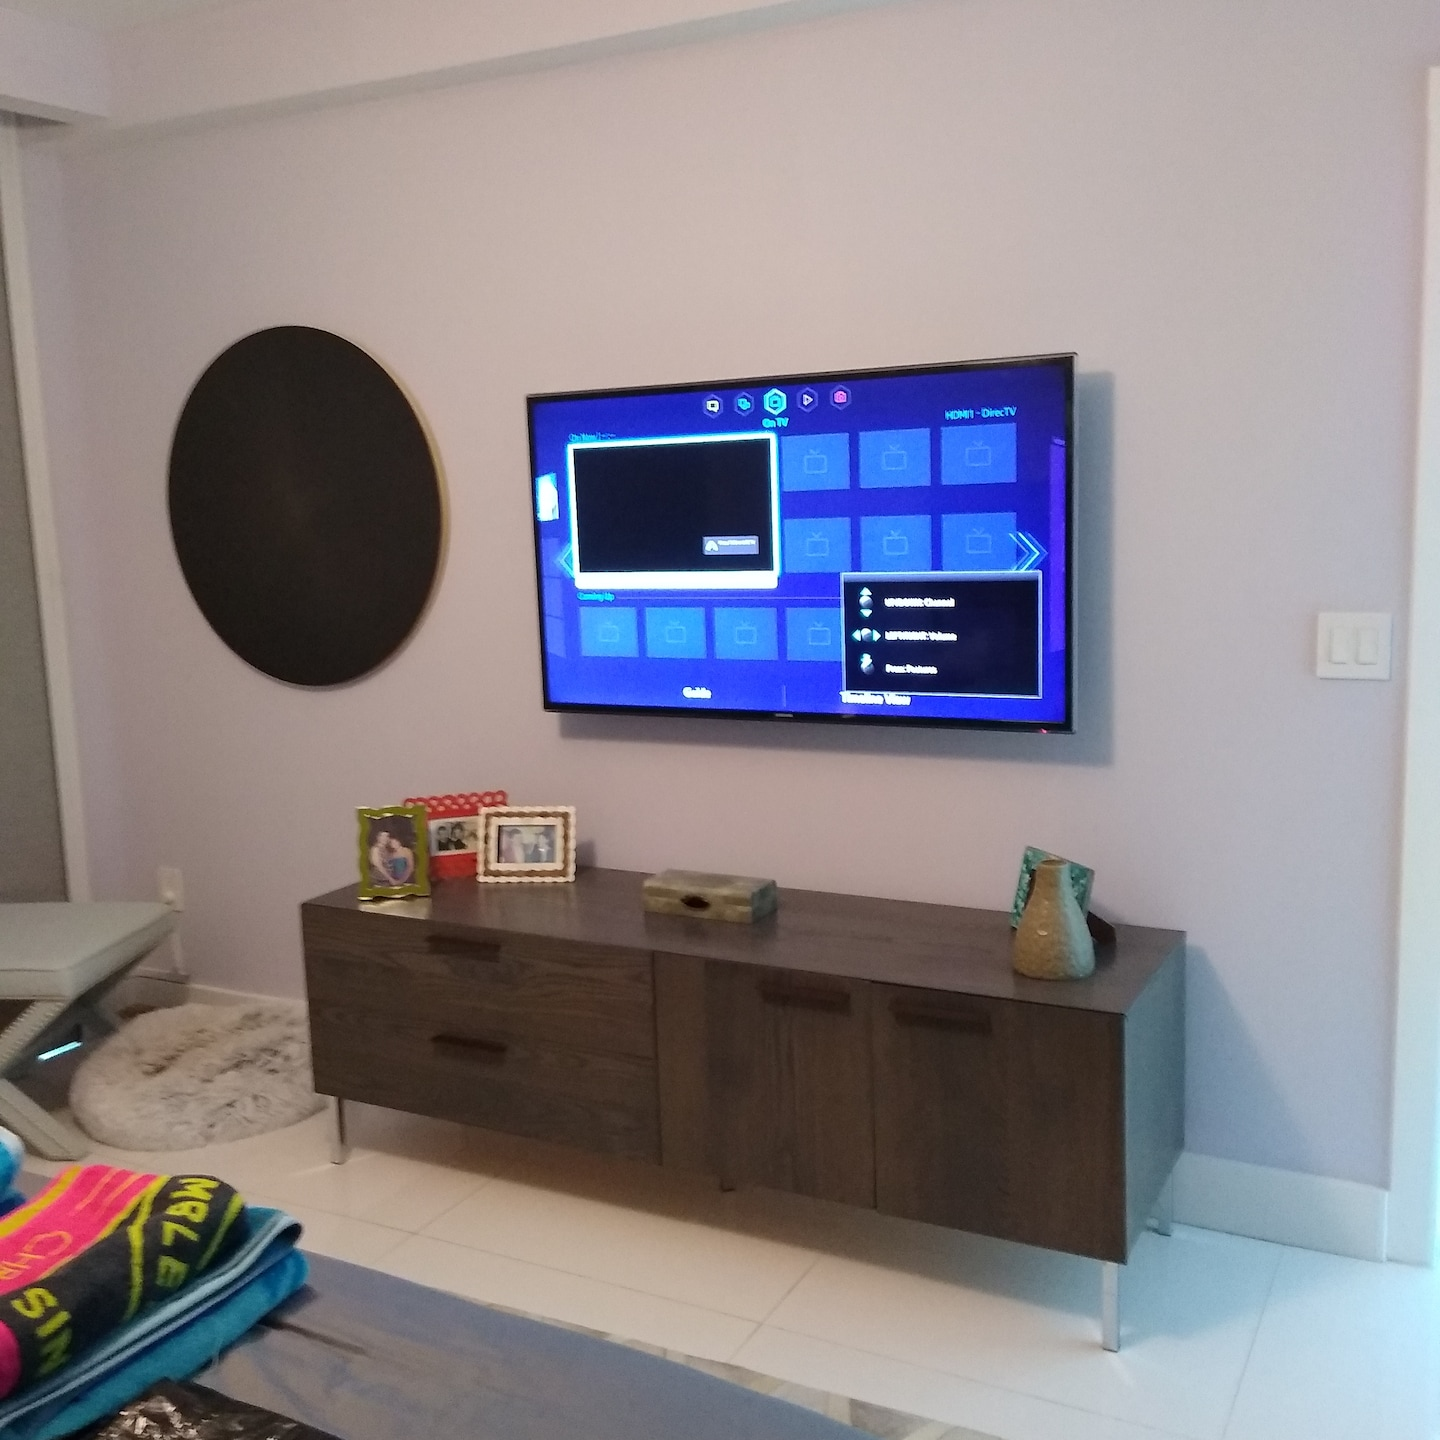 Wall Mount Your TV & More